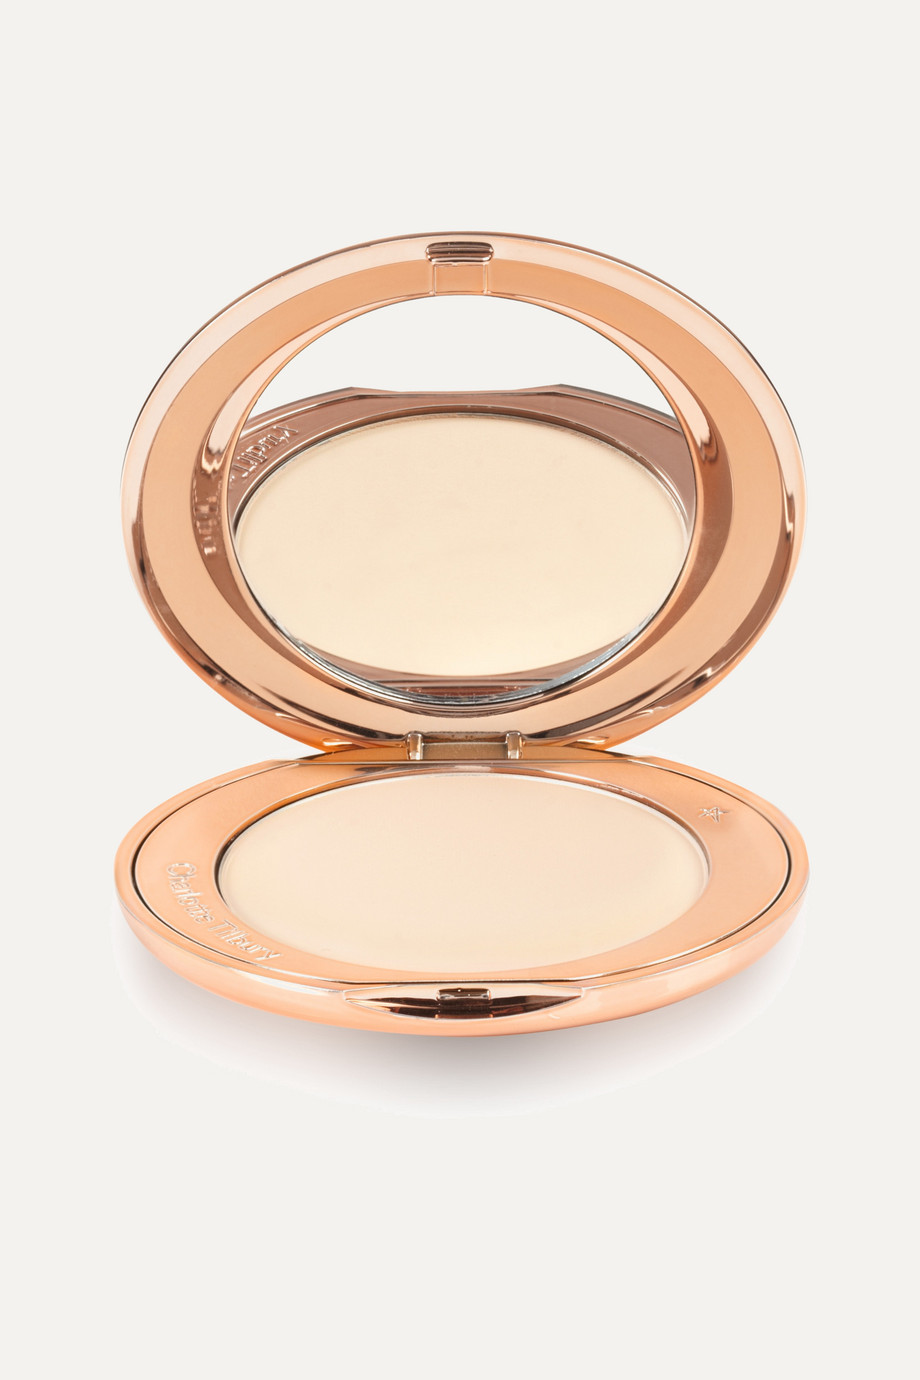 Charlotte Tilbury Poudre compacte Airbrush Flawless Finish, 1 Fair